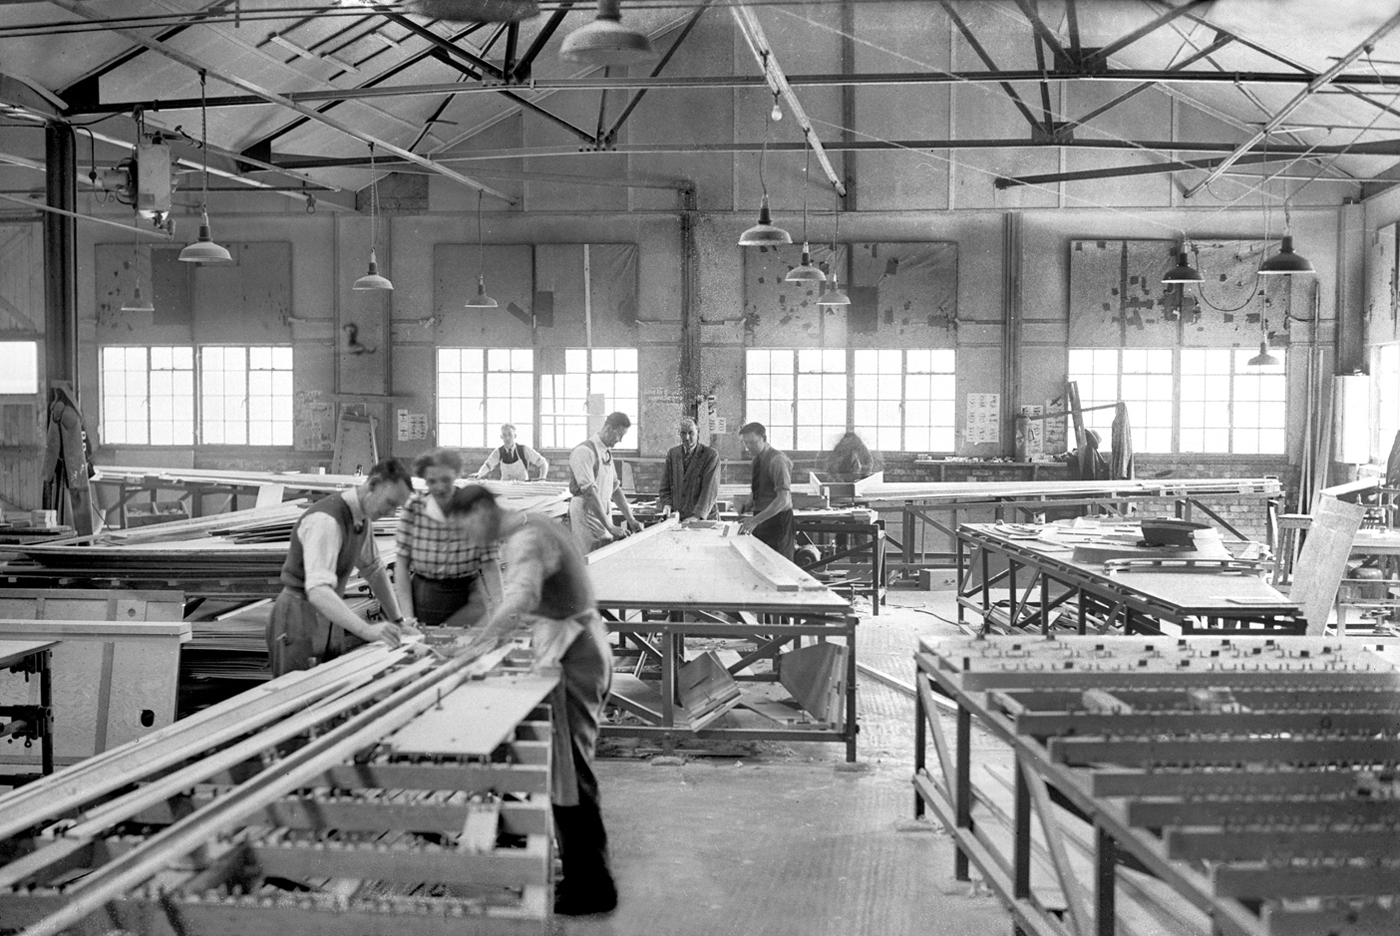 Walter Lawrence ran a successful joinery works, but the crafting of fast hundreds was his real passion